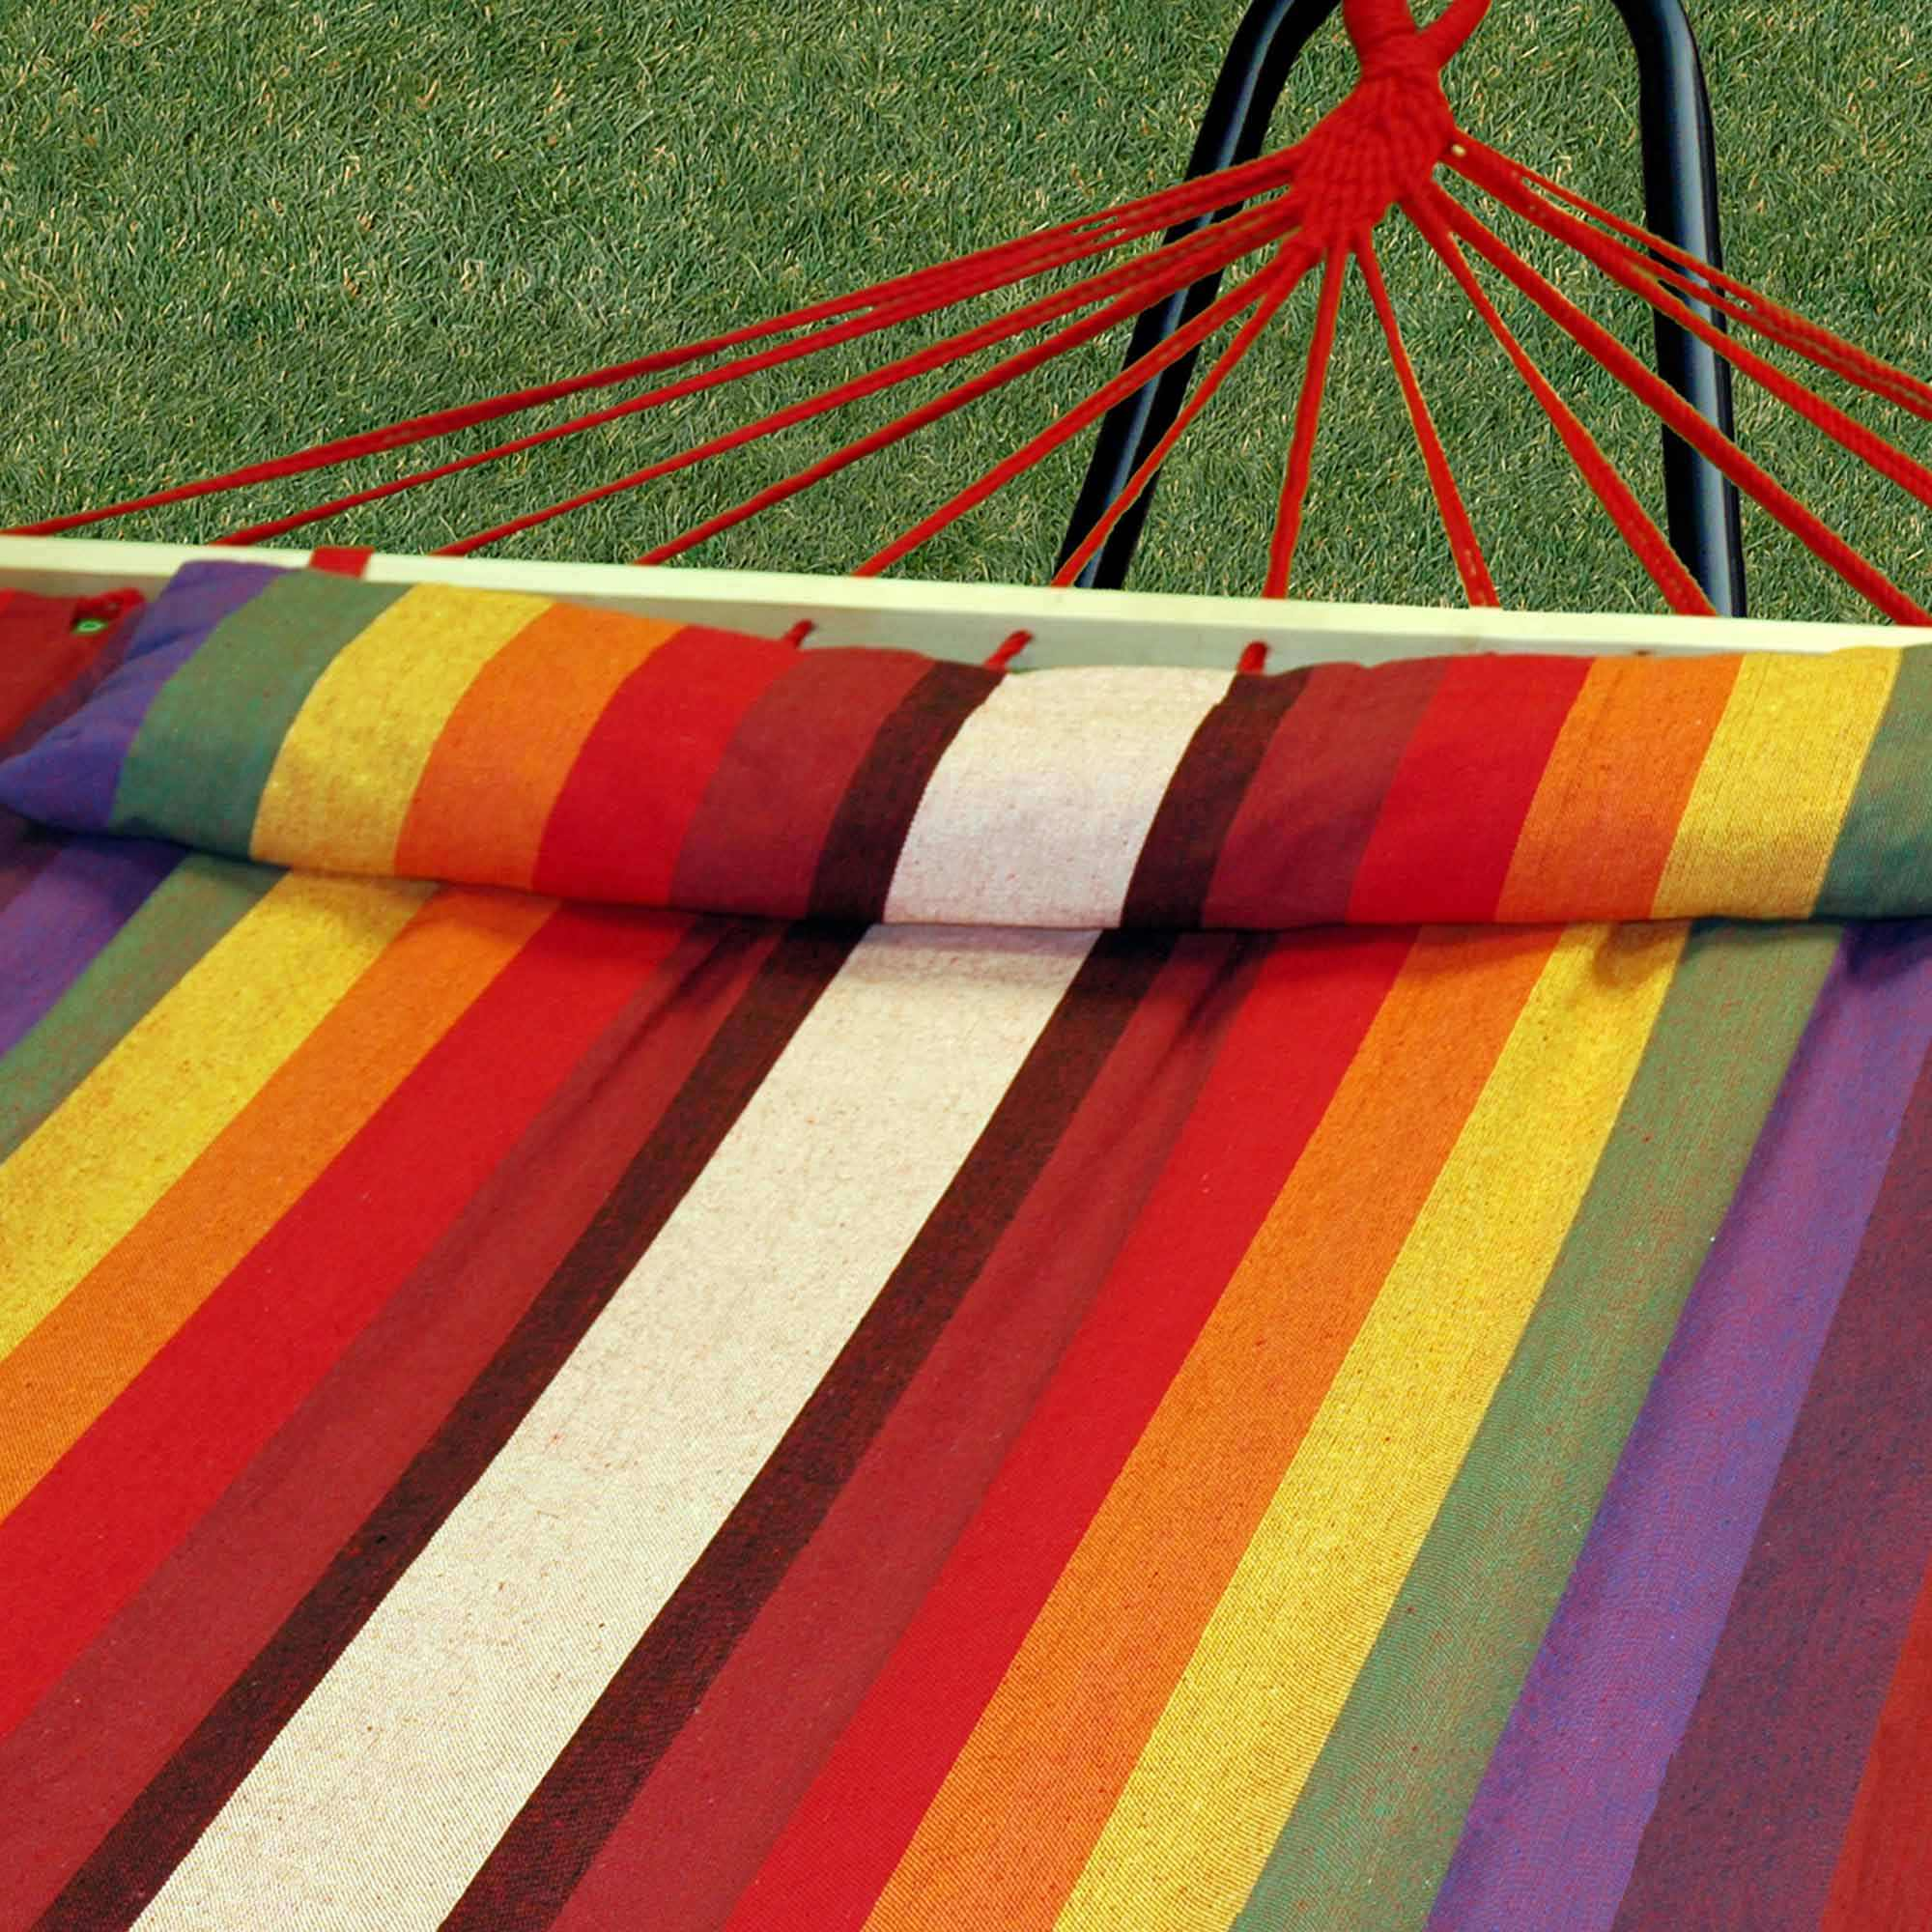 Oversized Hammock With Spreader Bars Tequila Sunrise